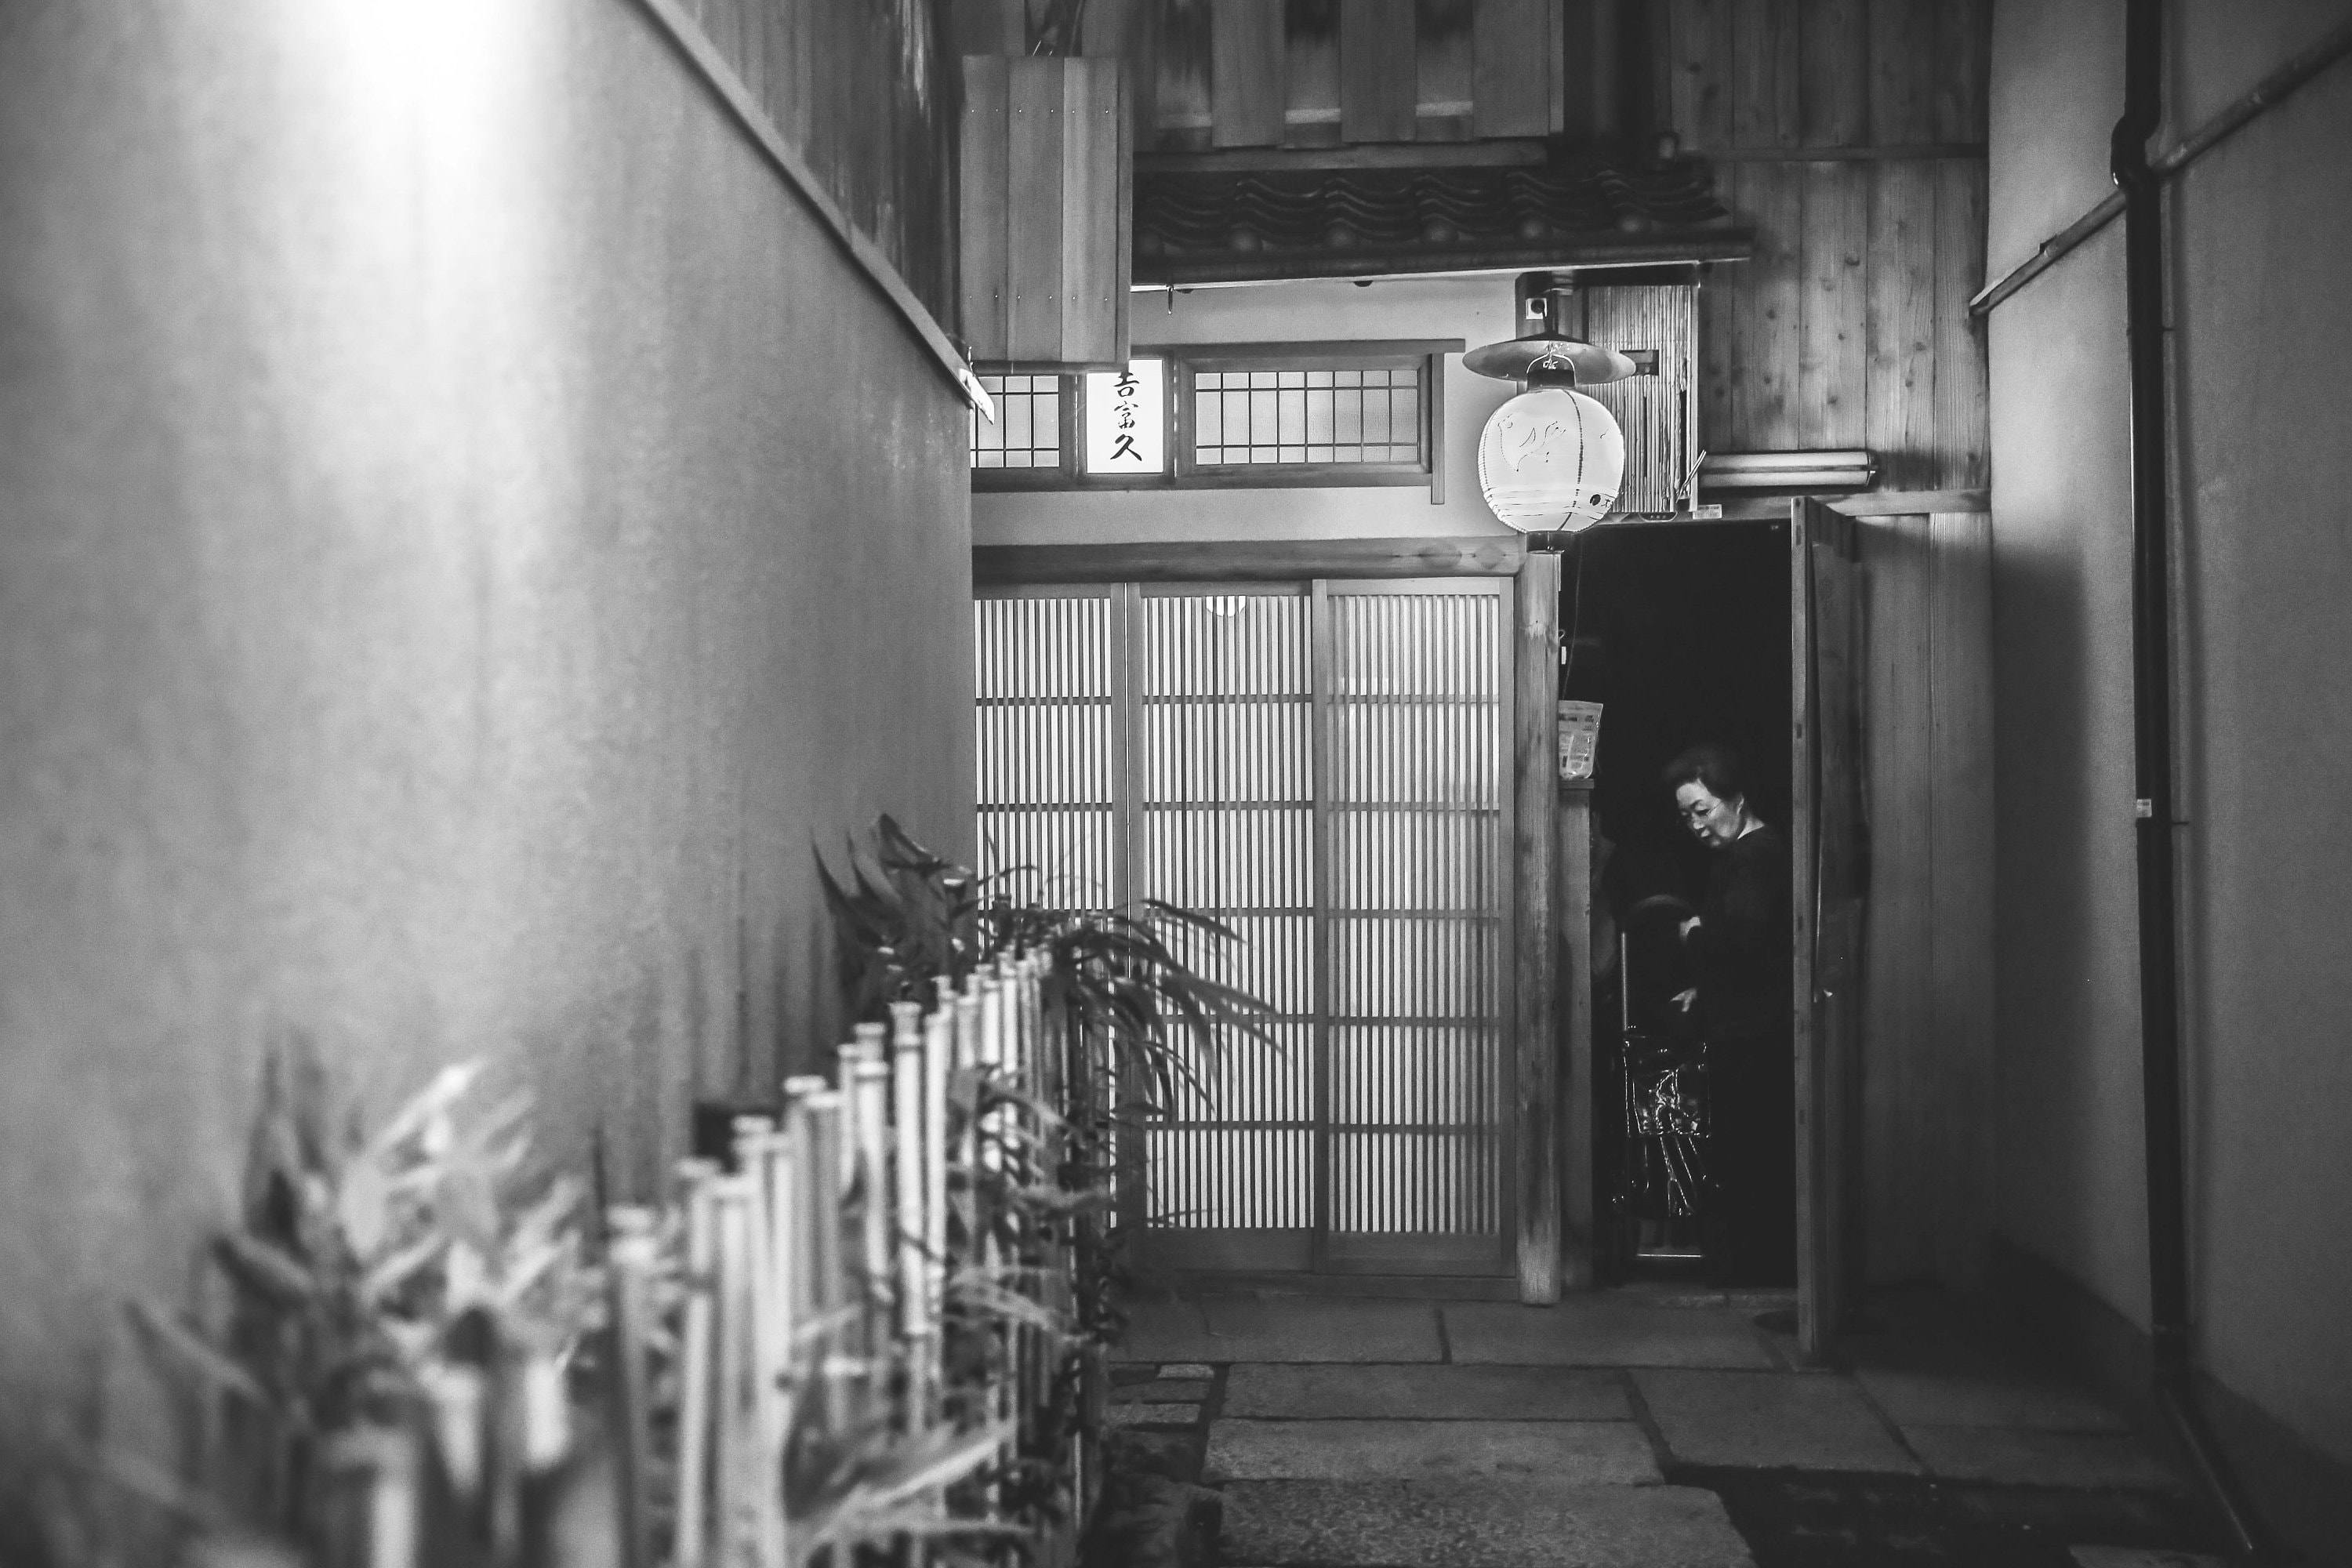 Black and white photography japan print travel and street photo japanese wall art gift for japan lovers home decor tell me your story